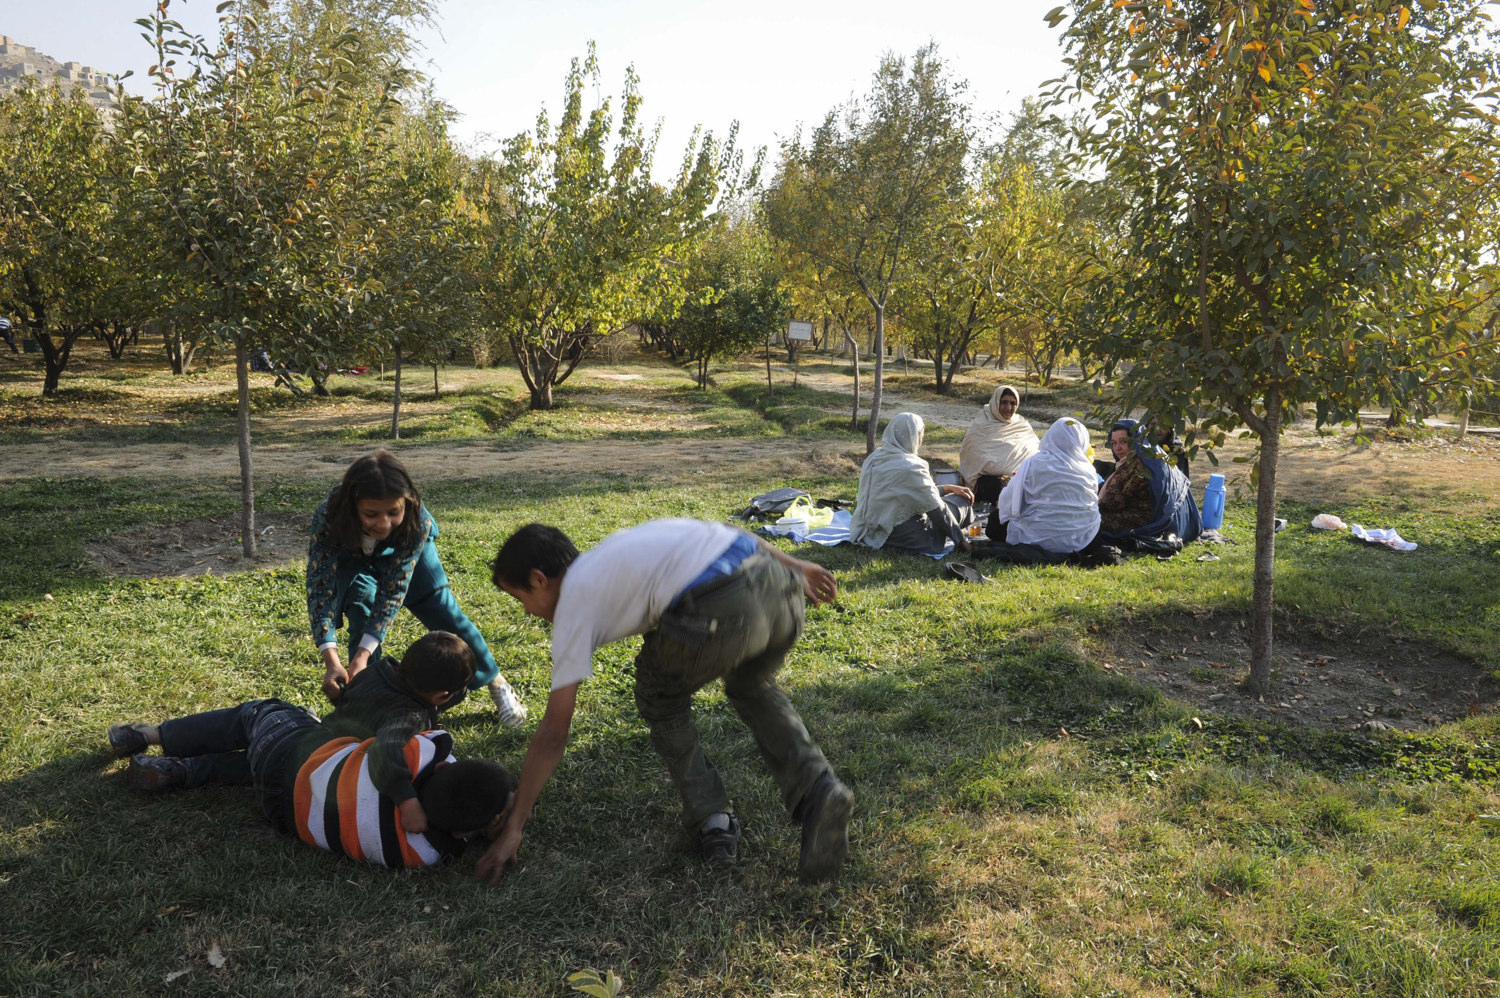 Children play on the grass at Bagh-e Babur historic park in Kabul Afghanistan while mothers watch nearby. The park is also the last resting-place of the first Mughal emperor Babur.